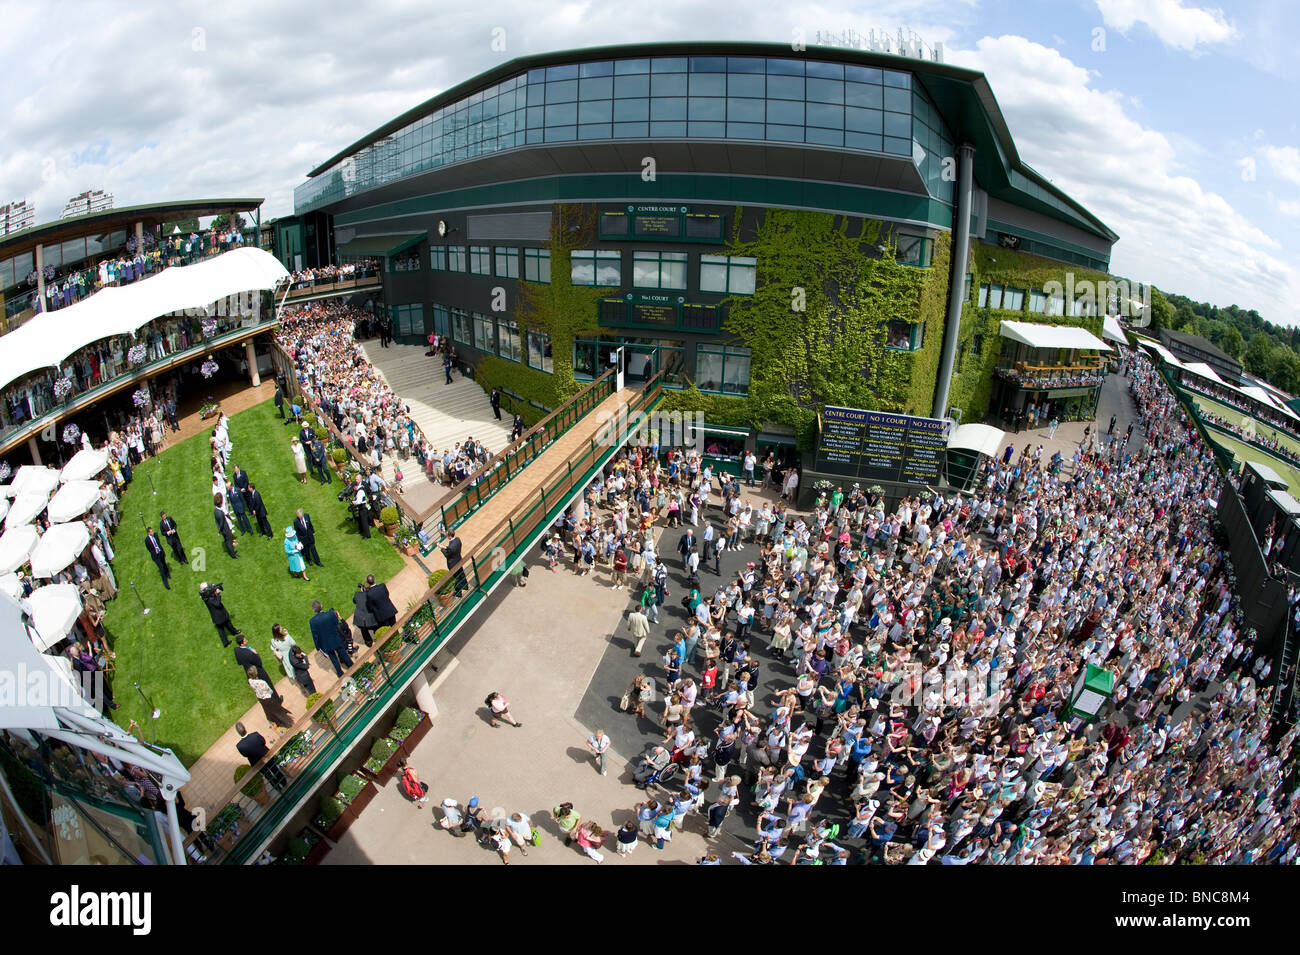 Crowds watch as HRH Queen Elizabeth II meets players on the members lawn during the Wimbledon Tennis Championships - Stock Image